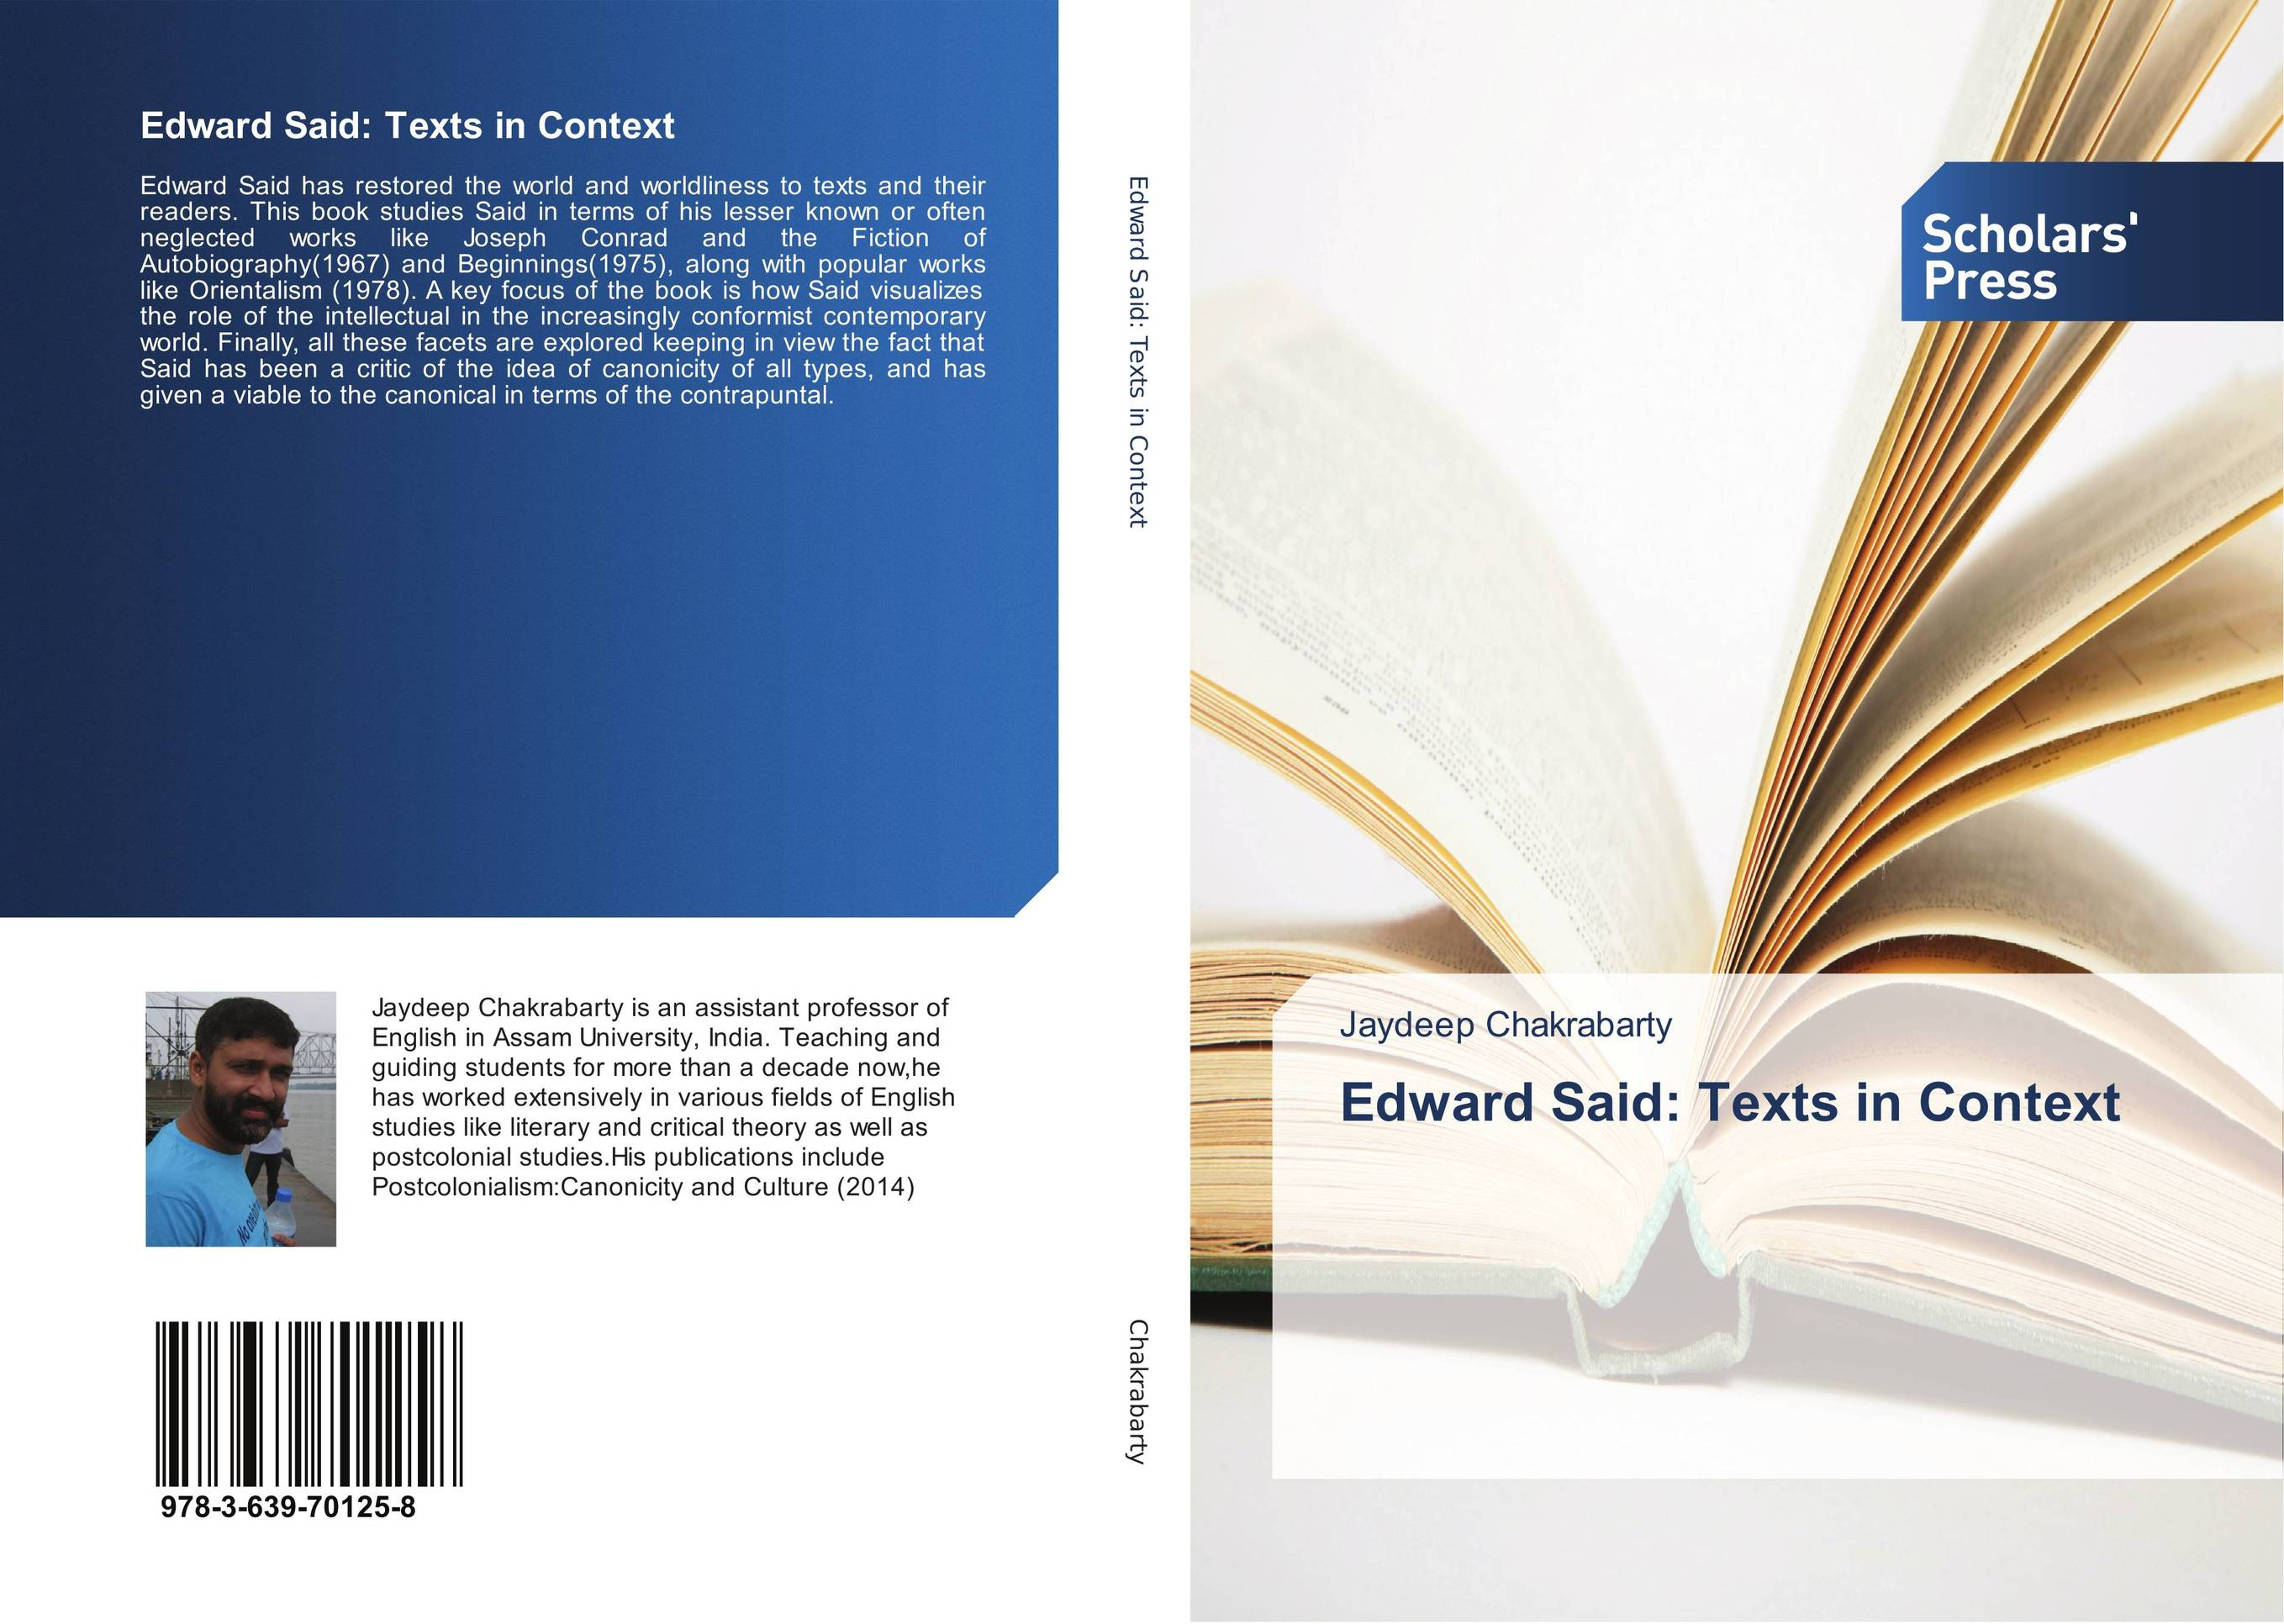 Edward Said: Texts in Context the critic